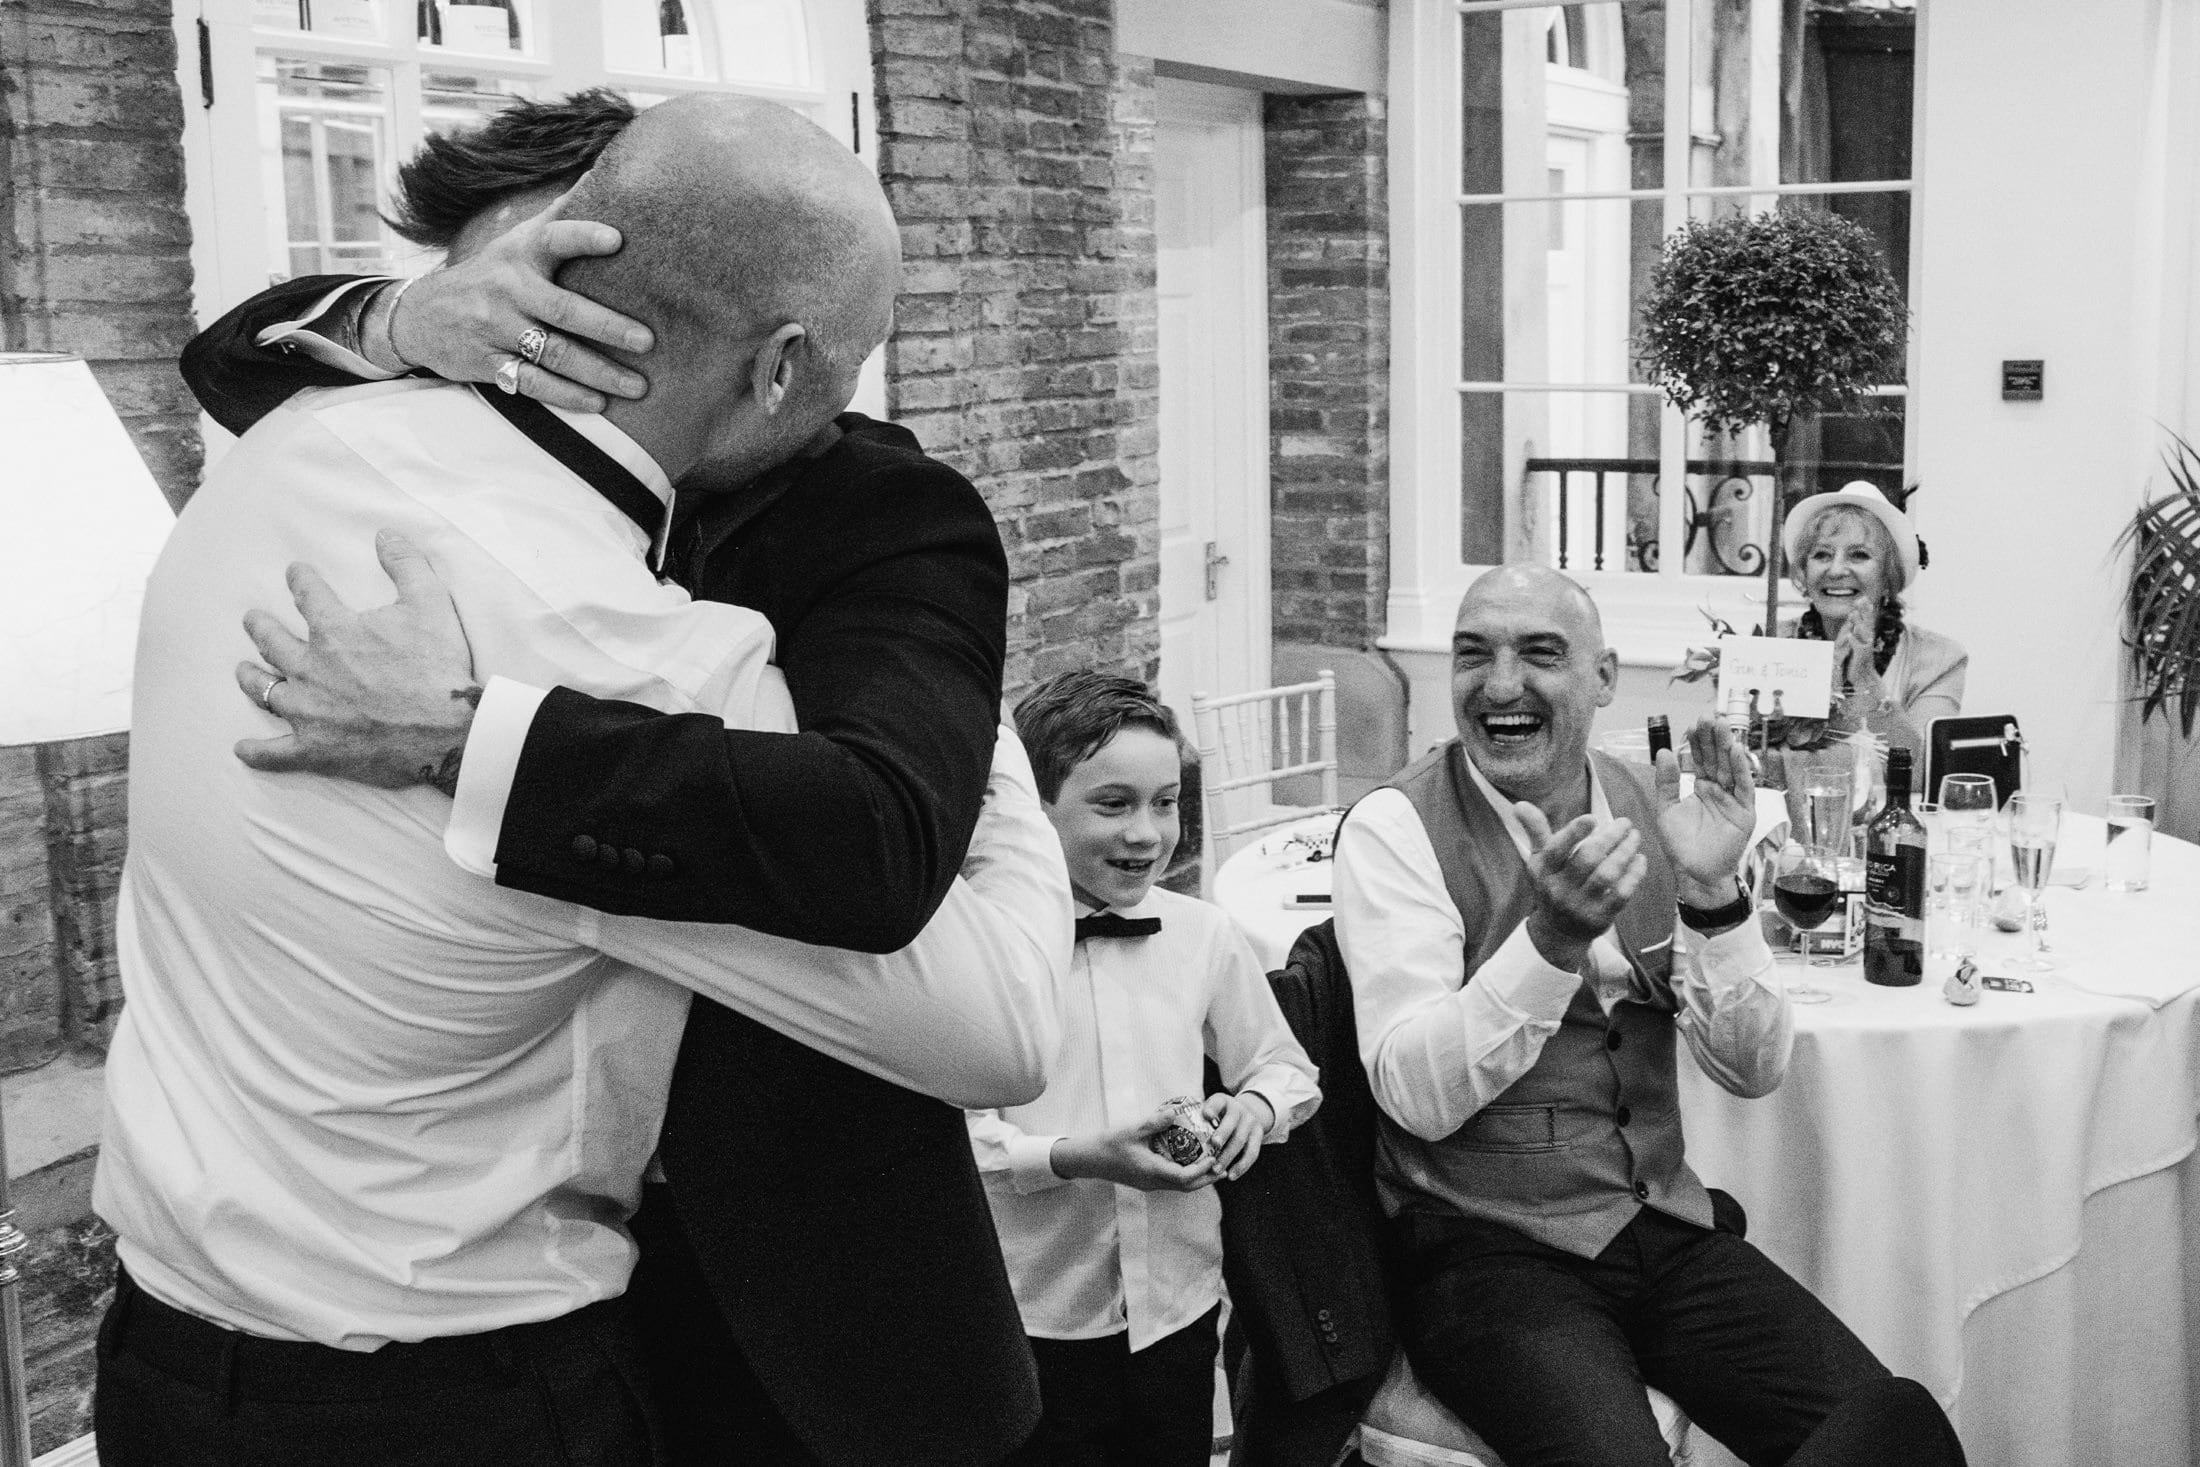 Emotional moment during the wedding speeches. Groom and best man hug each other tightly.